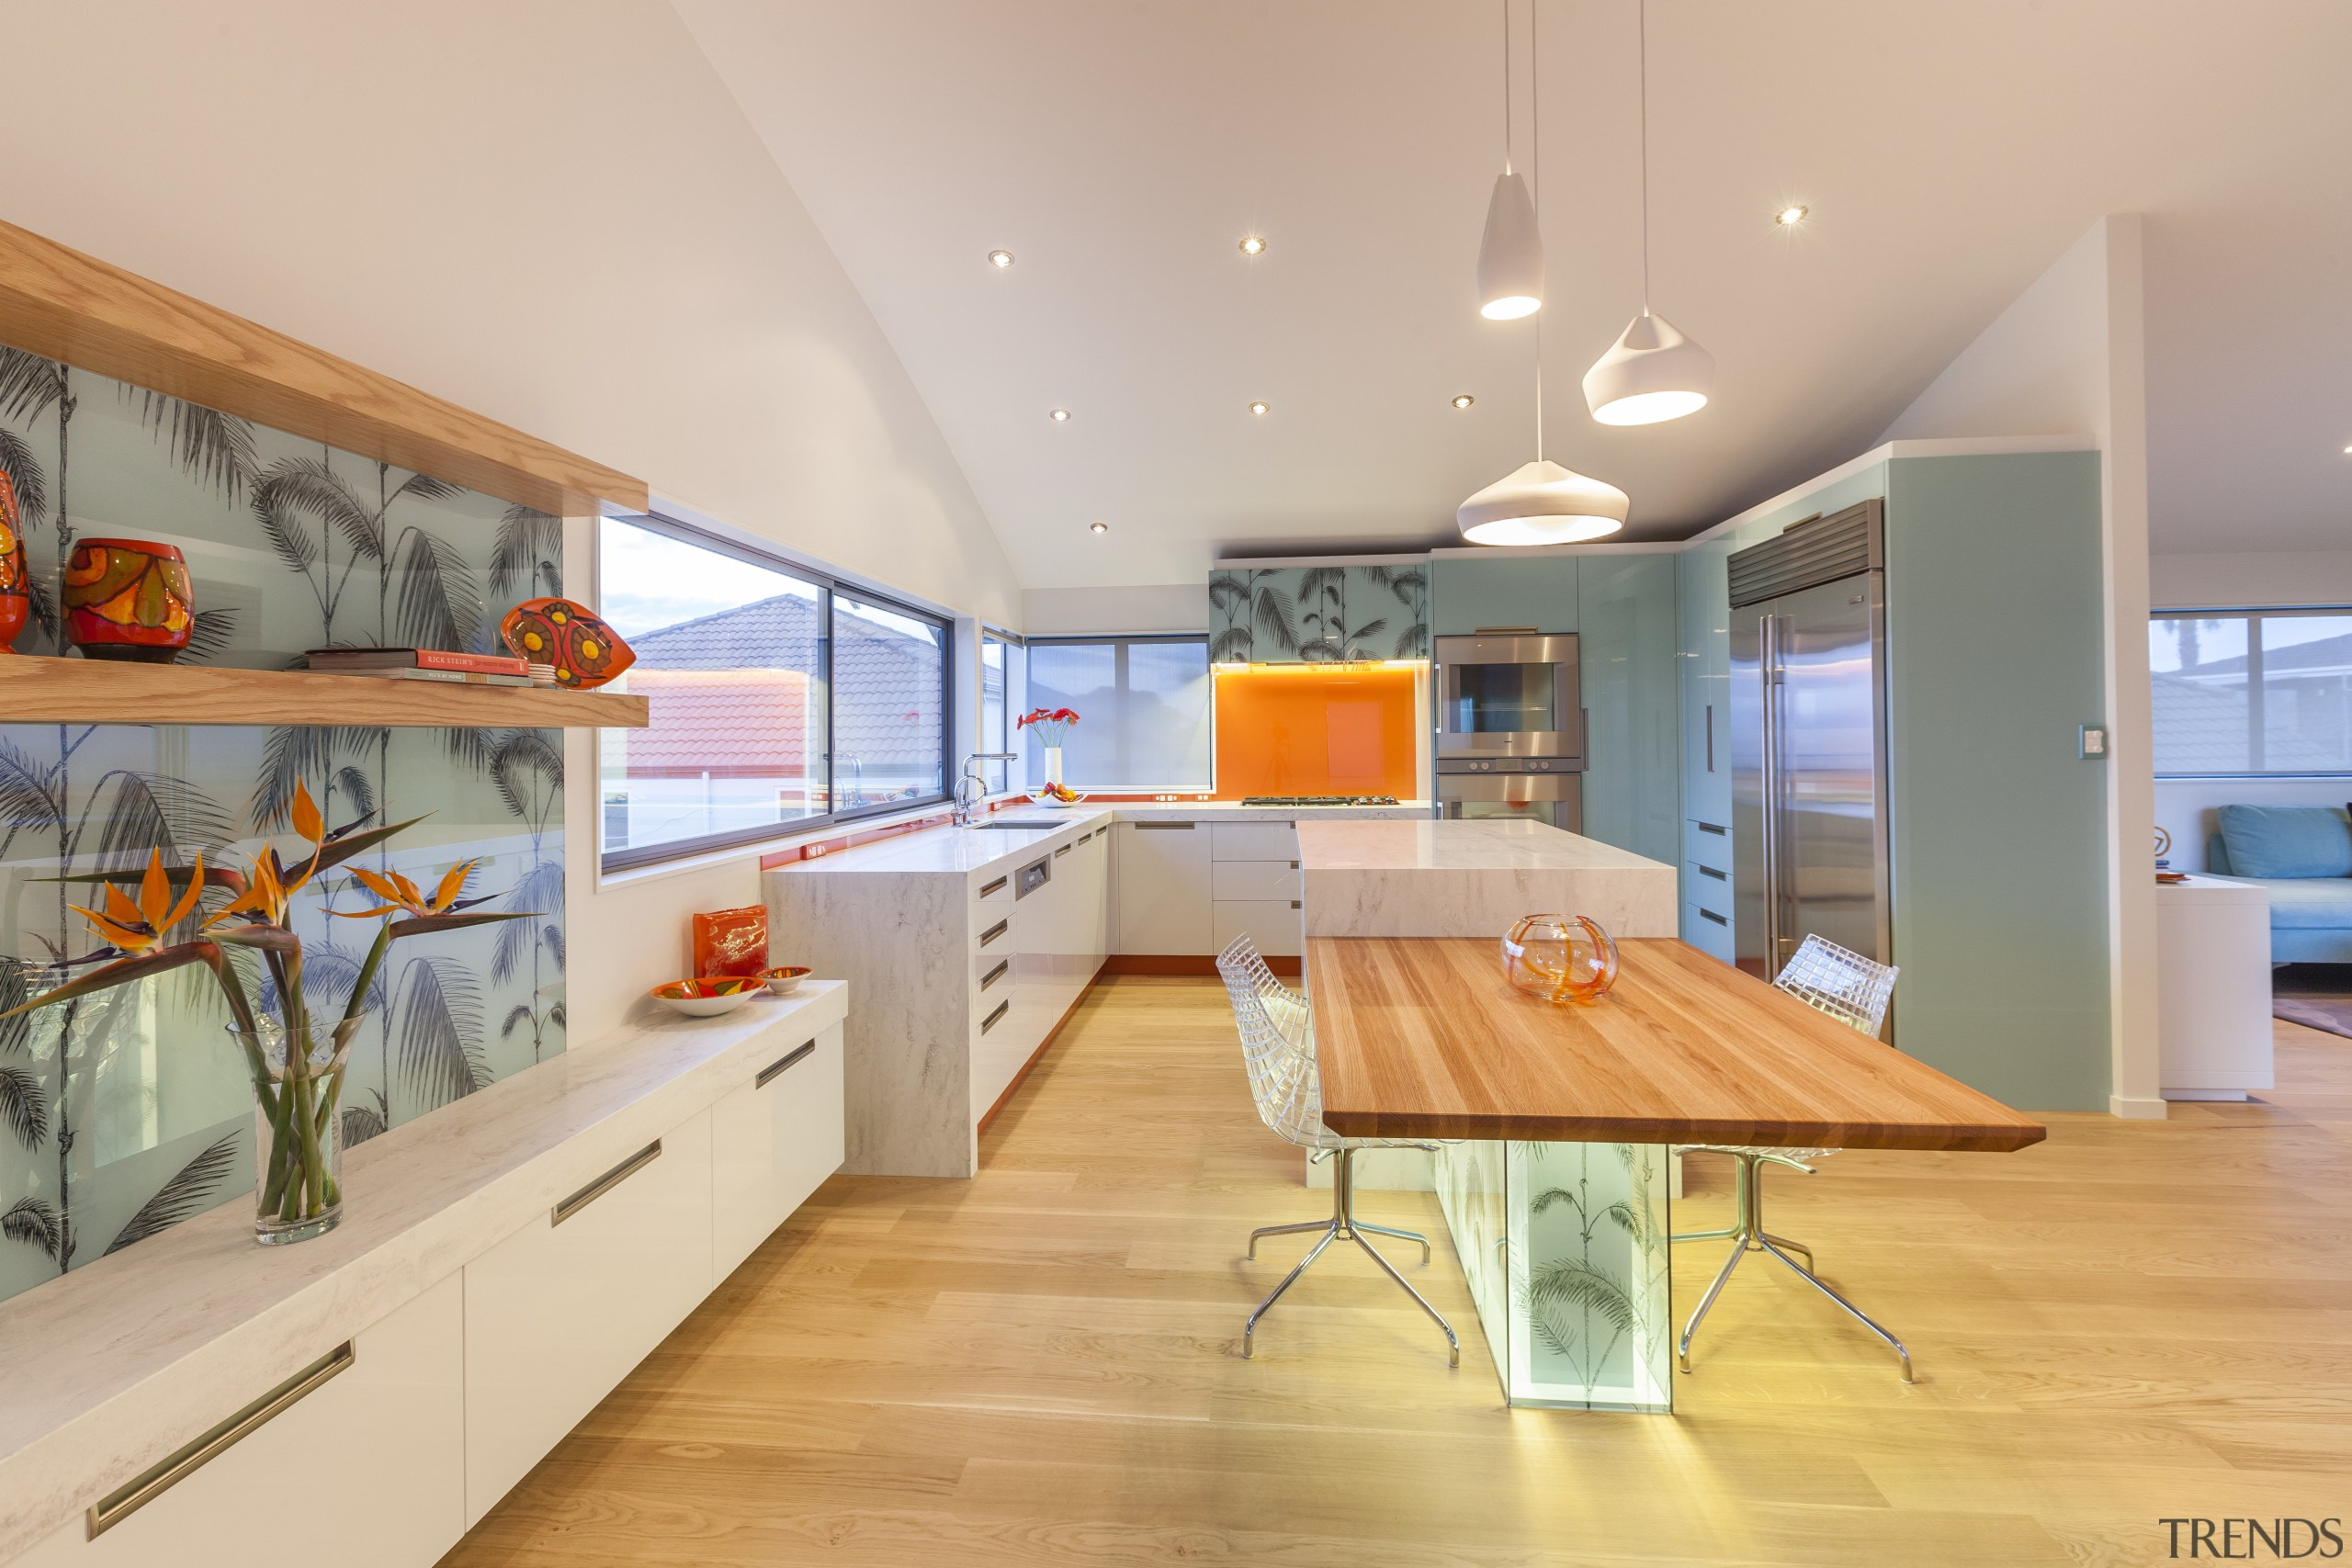 Decorative printed glass panels enliven this kitchen wall, architecture, ceiling, house, interior design, real estate, orange